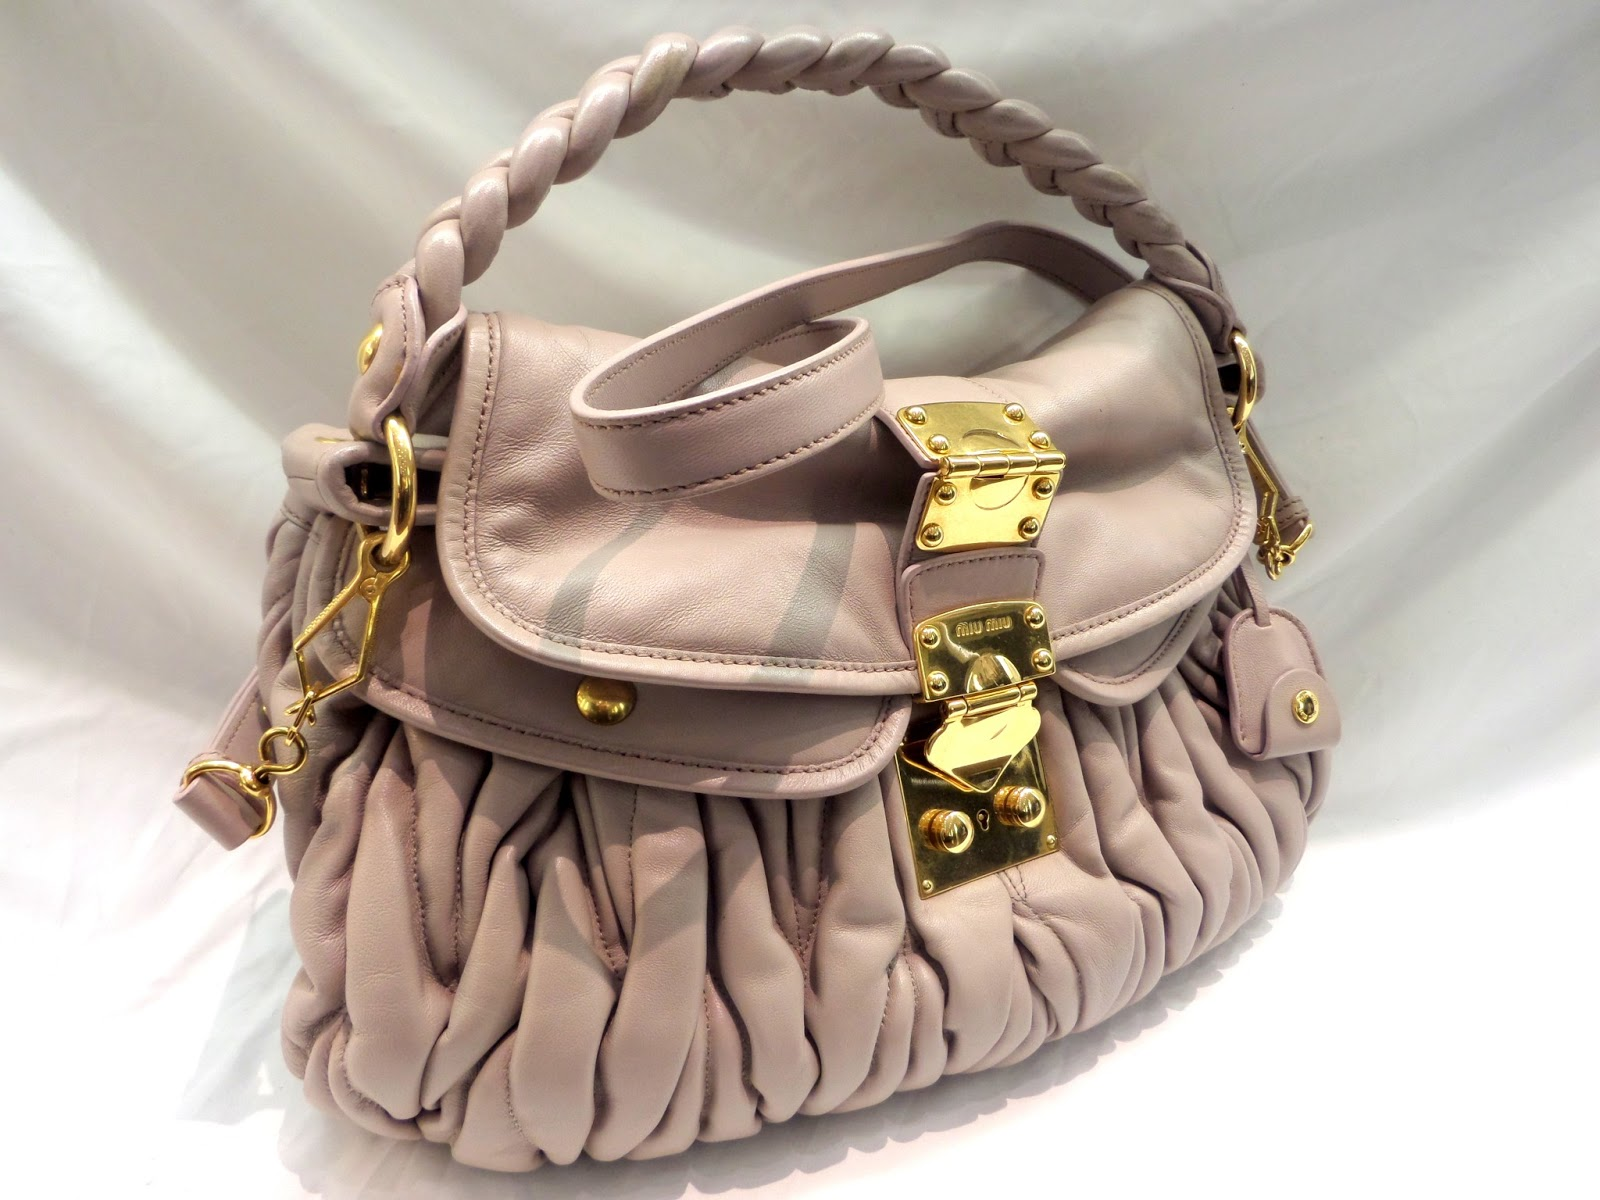 fe9875e047fe ... Miu Matelasse Lux Leather Coffer Bag on consignment at  OnceAgainOnline.com. Free shipping within Canada and USA. 100% authenticity  guarantee!!